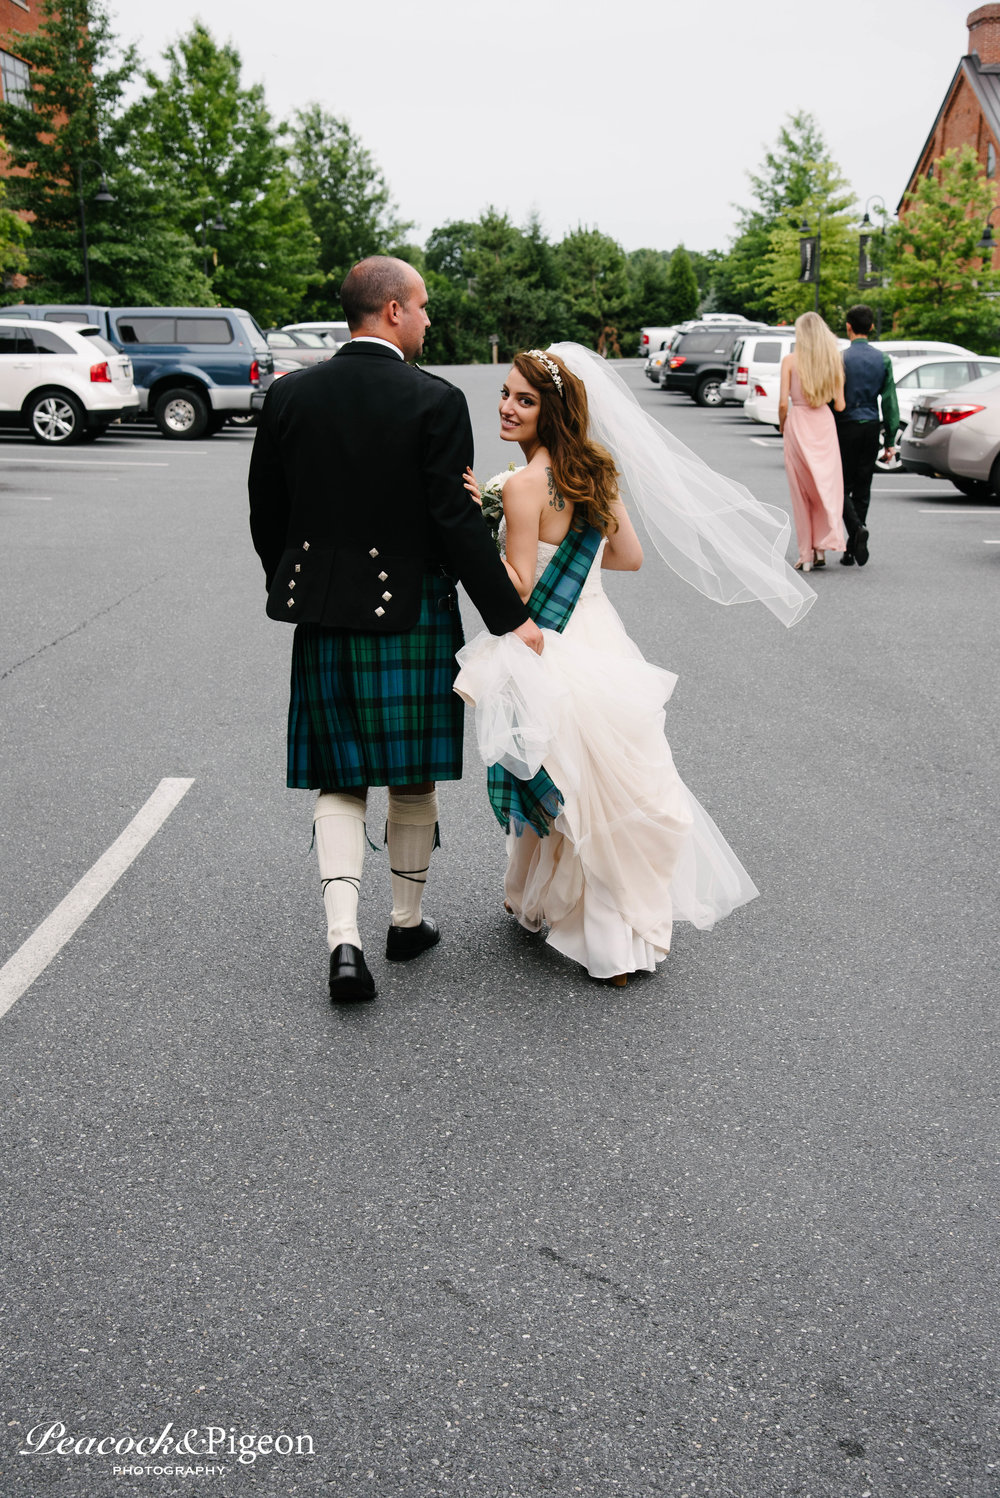 Callum_and_Sara's_Wedding_at_the_Cork_Factory_Hotel_in_Lancaster-Part_Five_The_Bridal_Party_Watermarked-141.jpg